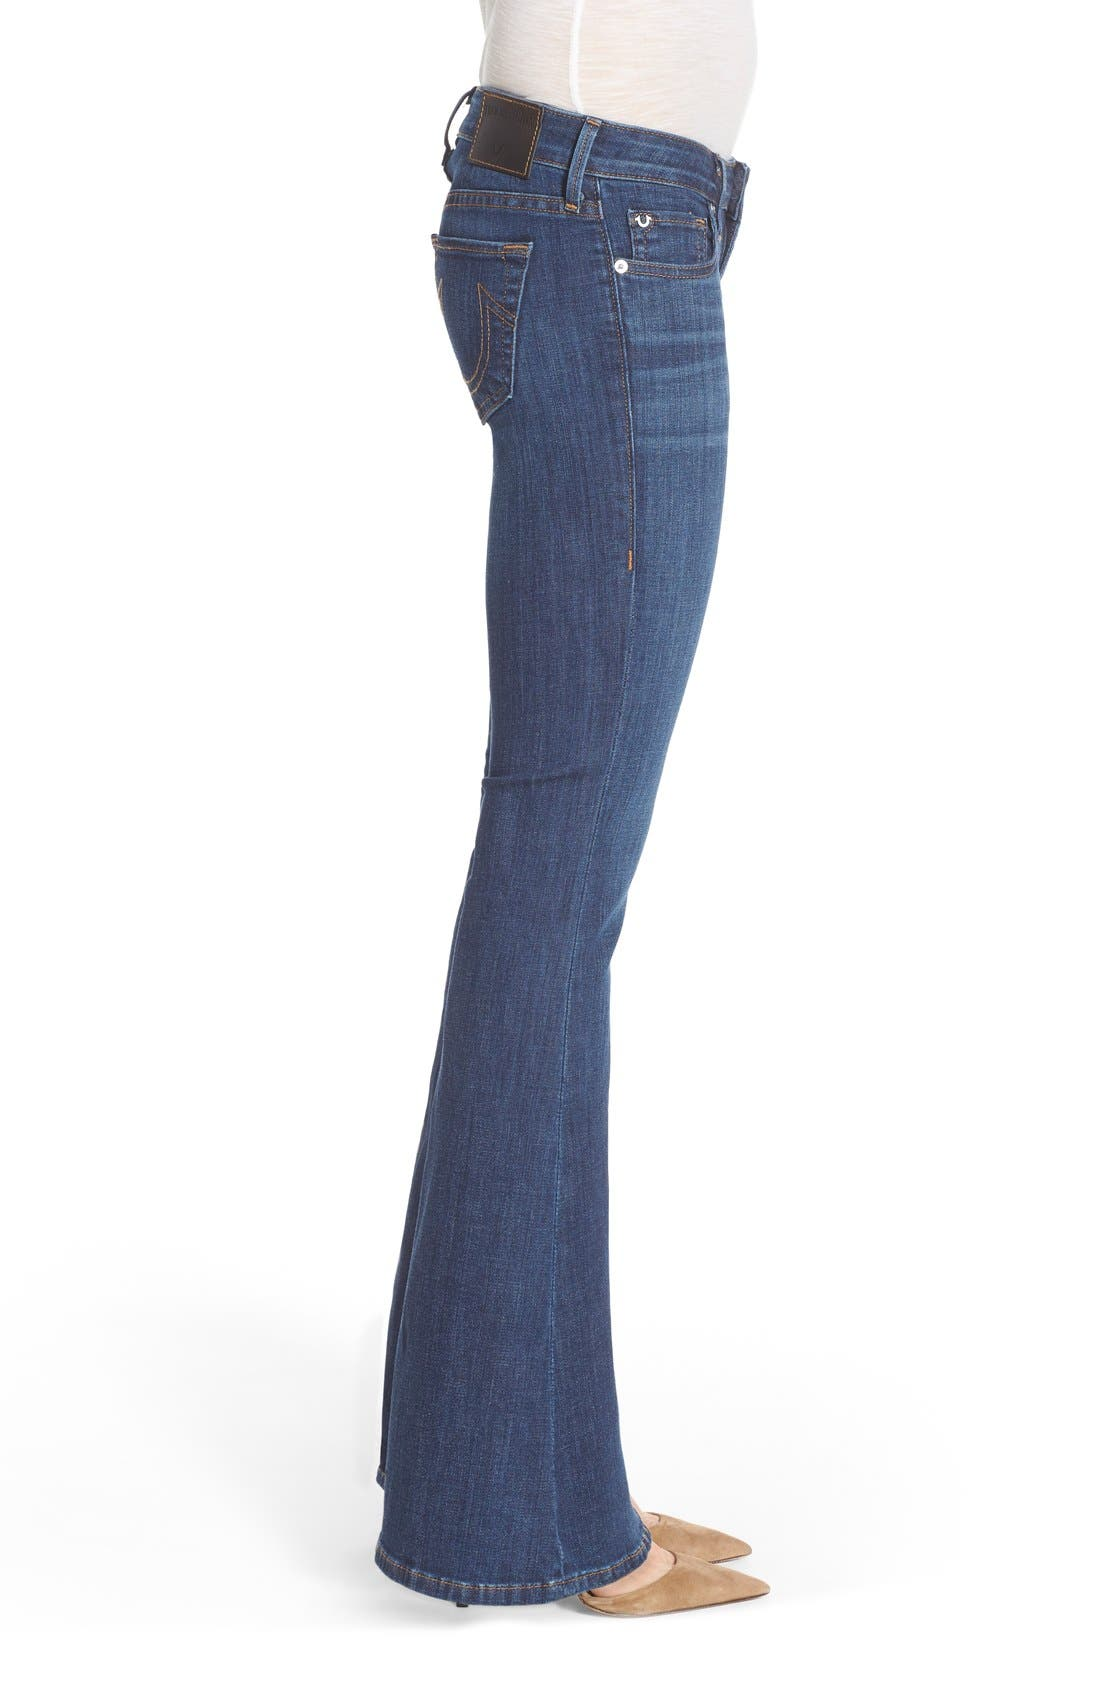 Alternate Image 3  - True Religion Brand Jeans 'Karlie' Bell Bottom Jeans (Worn Vintage)